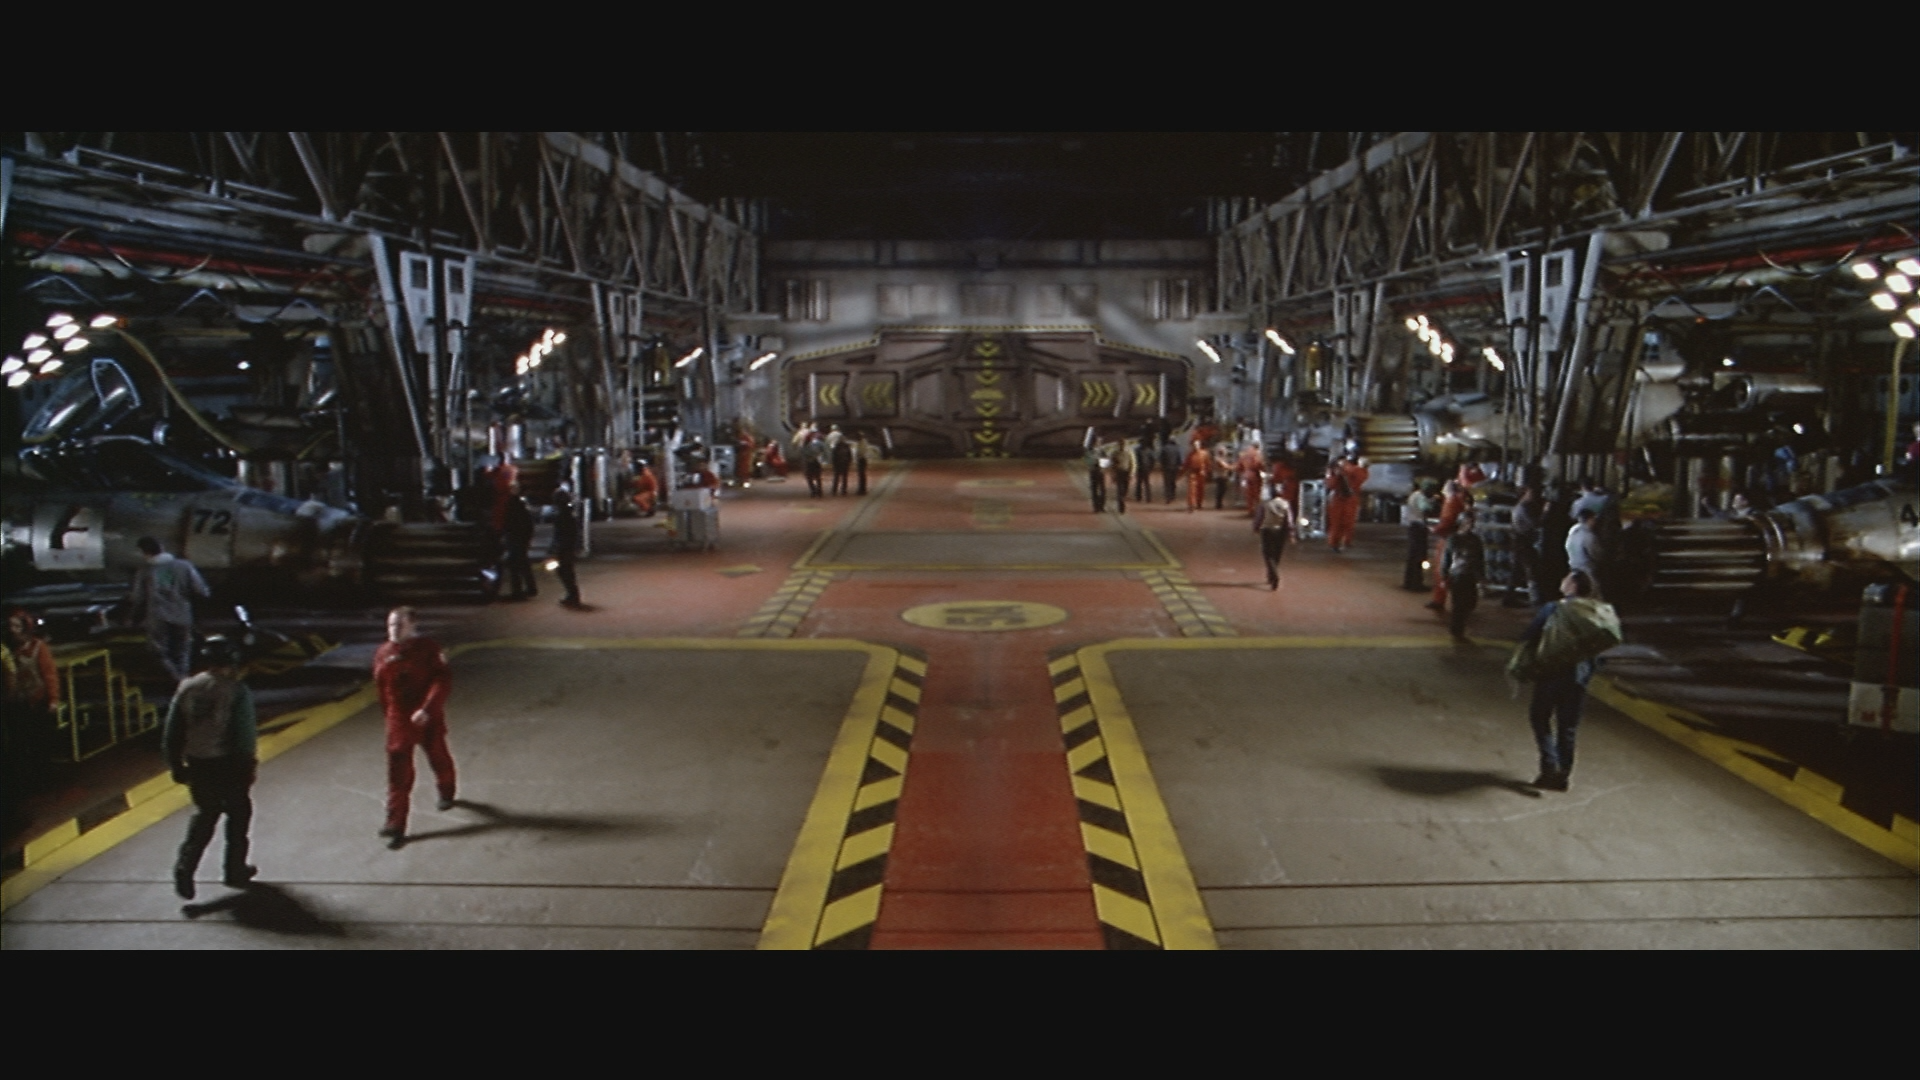 Wing commander movie image comparisons wing commander cic for Wing commander